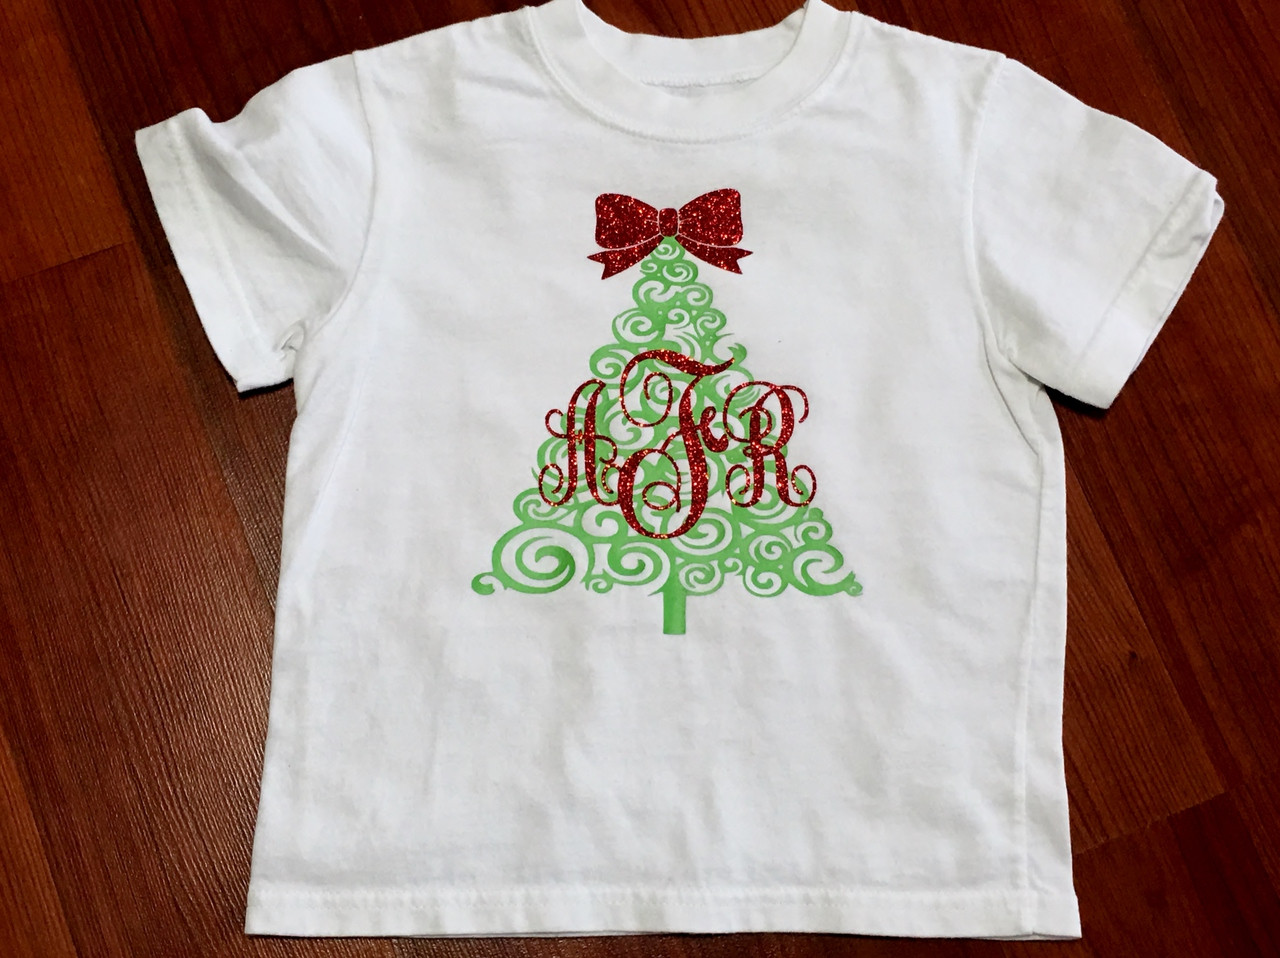 a4540c56b Christmas Tree Swirl Monogram Shirt - Christmas Shirt - Onesie - Tshirt -  Long Sleeve -